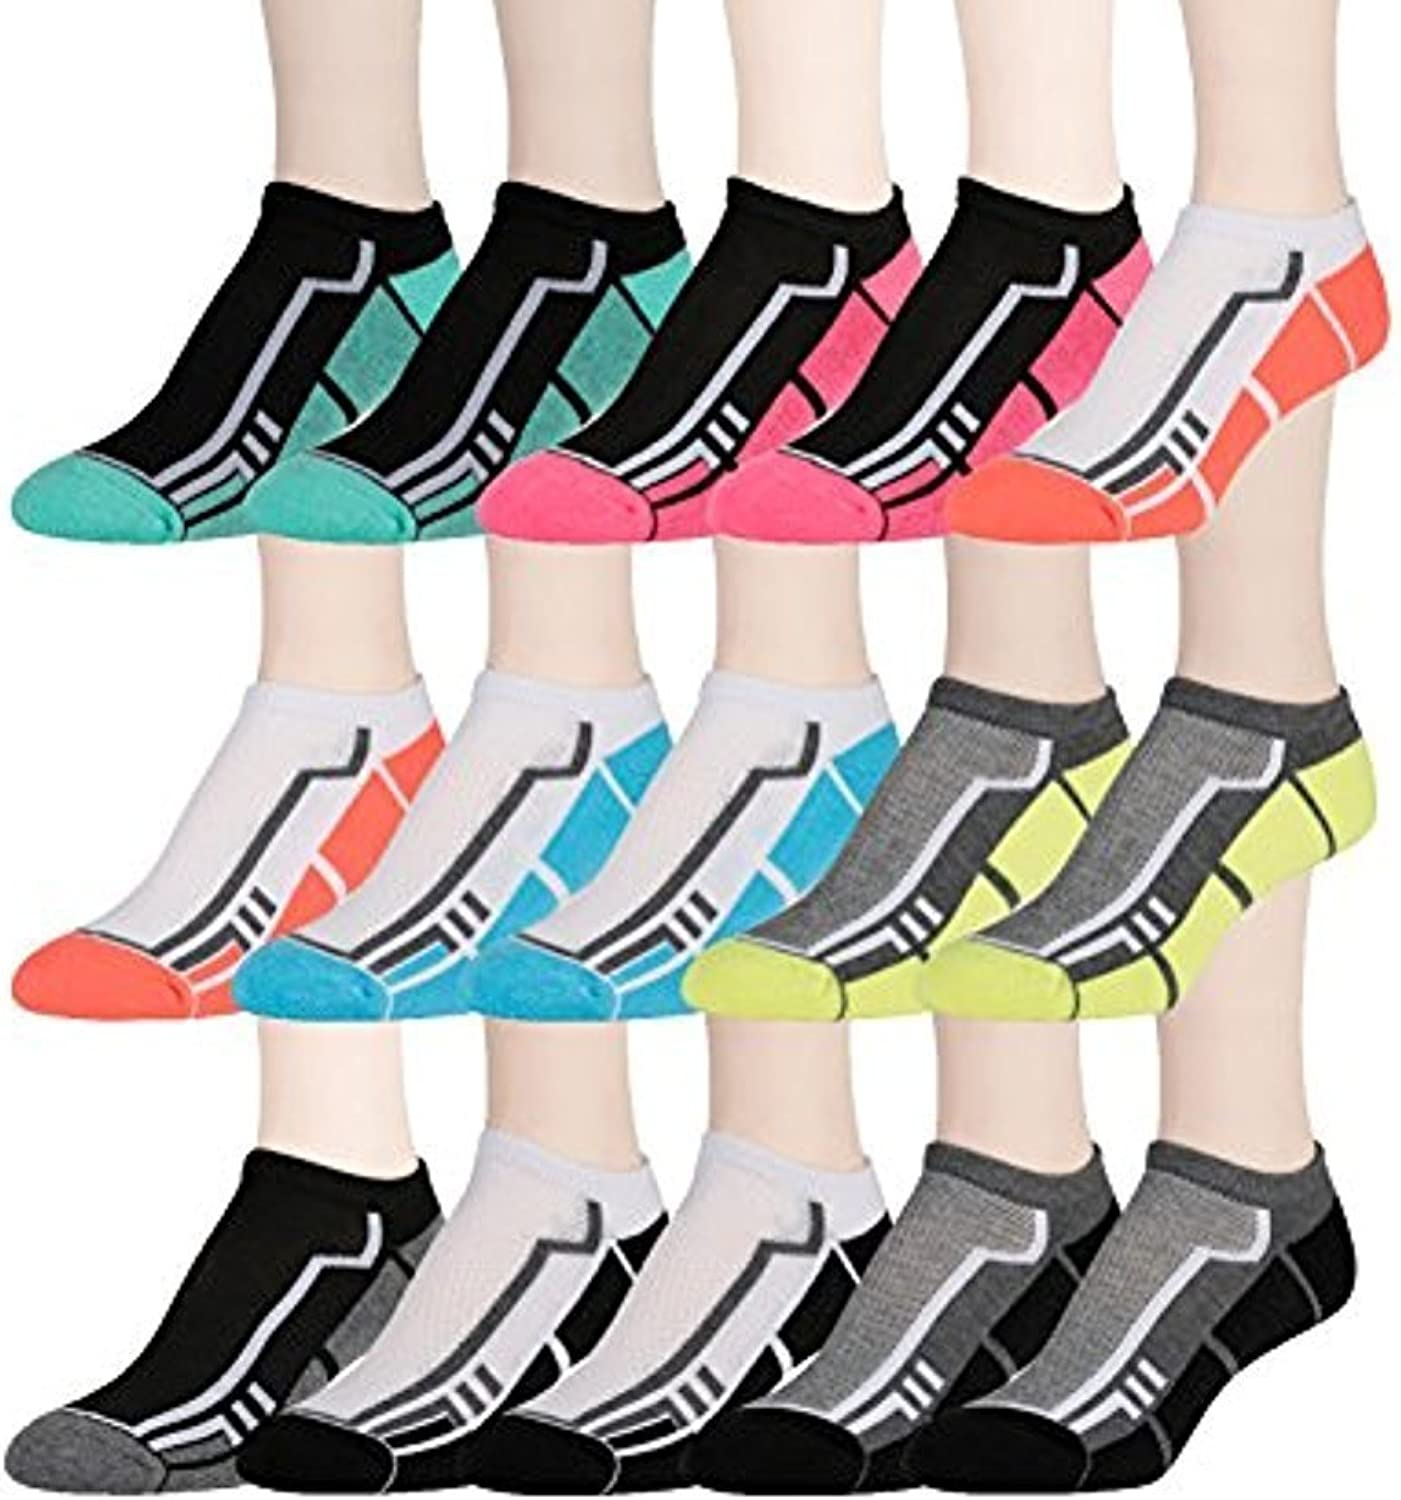 15 Pairs of WSD Womens High Performance Ankle Socks Low Cut Cushioned